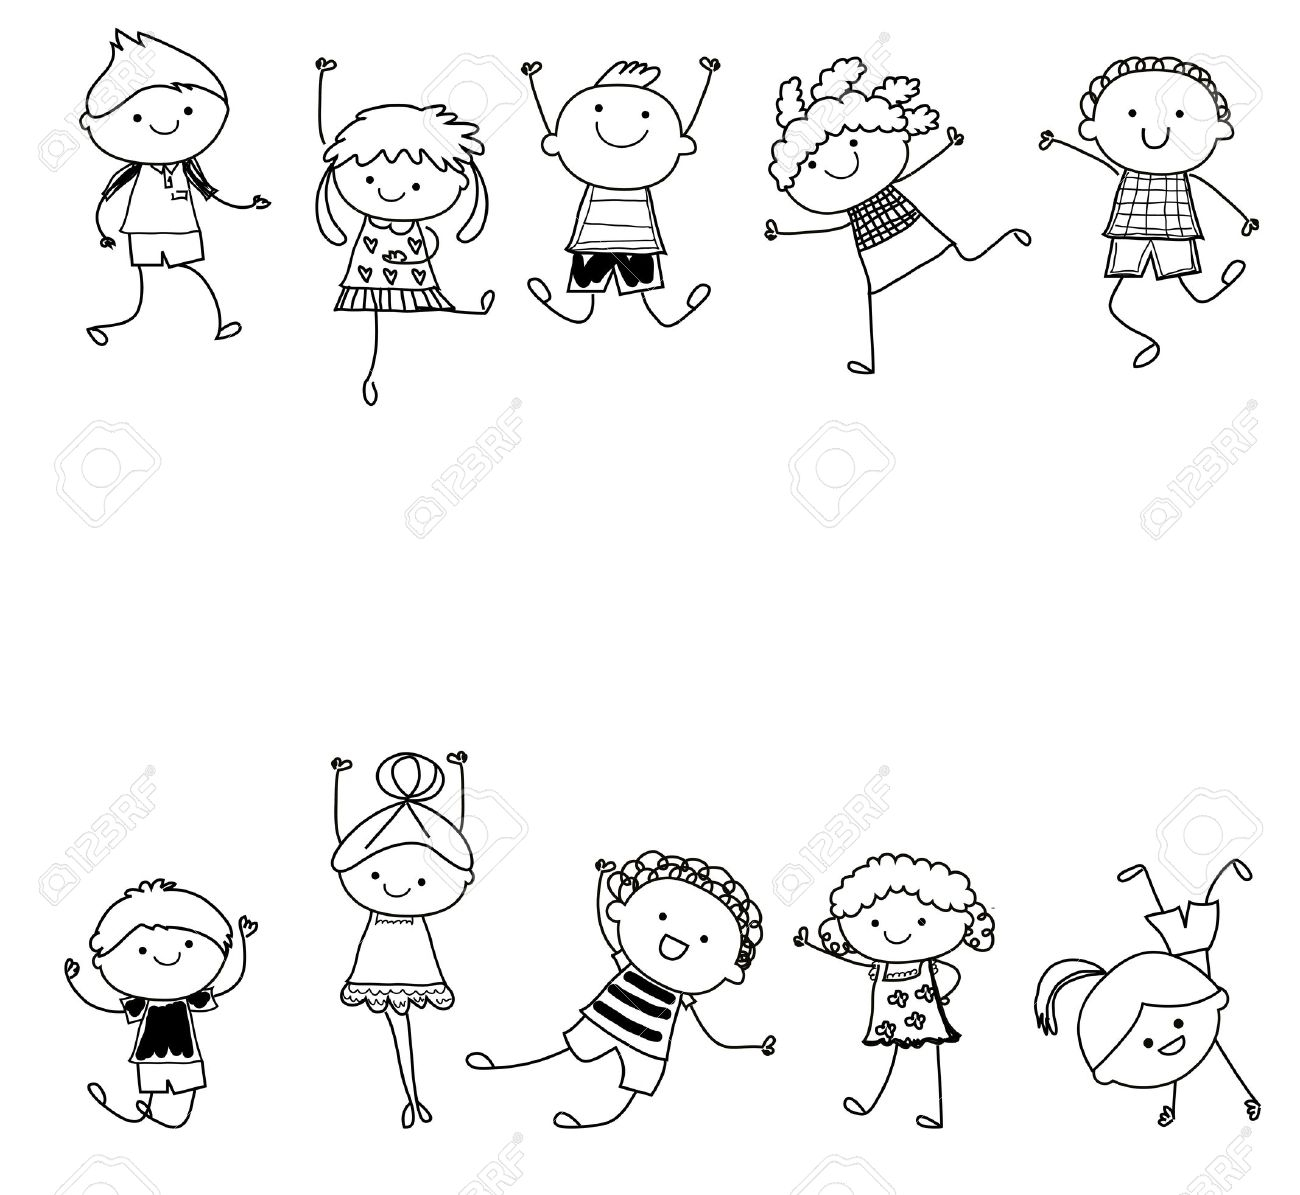 1300x1195 Drawing Sketch For Kids Gallery Drawing Sketch For Kids,